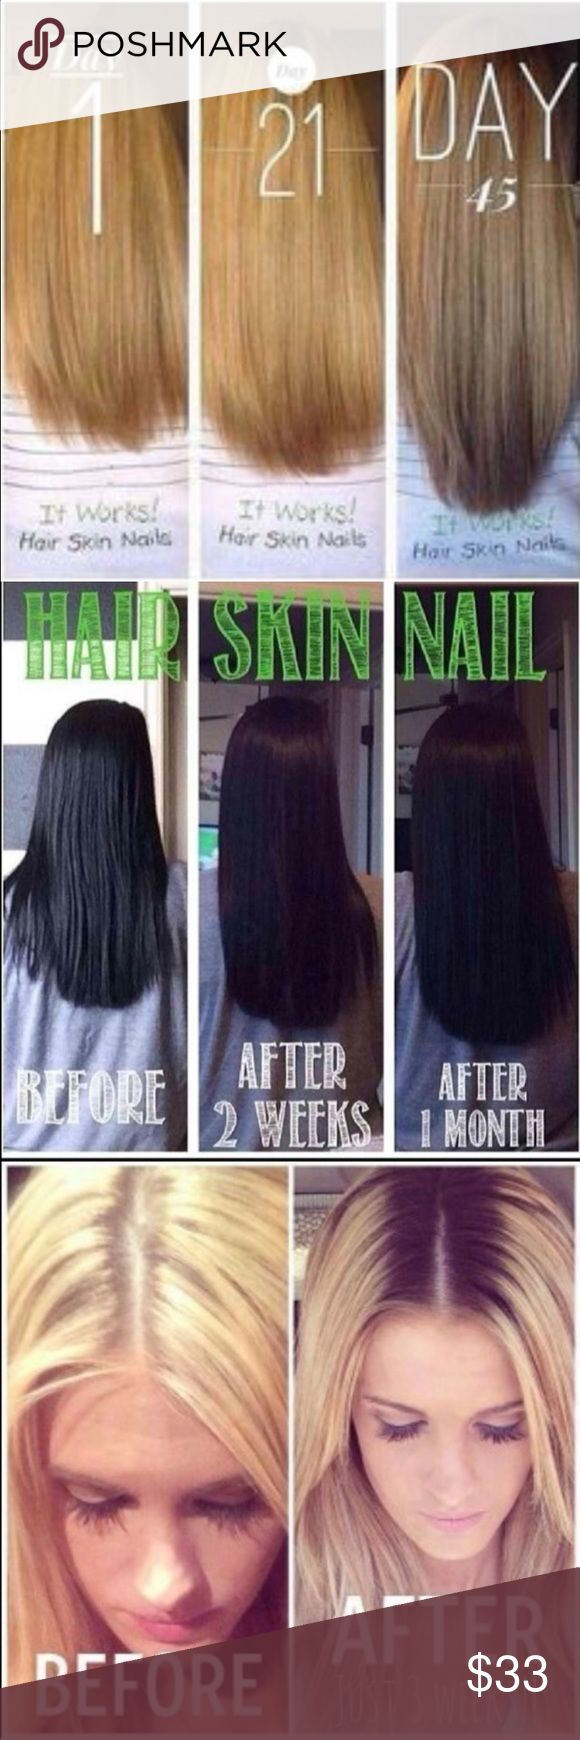 """Itworks hair skin nails models needed It works hair models needed! 90 day challenge to grow your hair and nails for fall at my price! comment """"long hair"""" for details. I still have a few spots left!  **DONT BUY THIS LISTING** Other"""